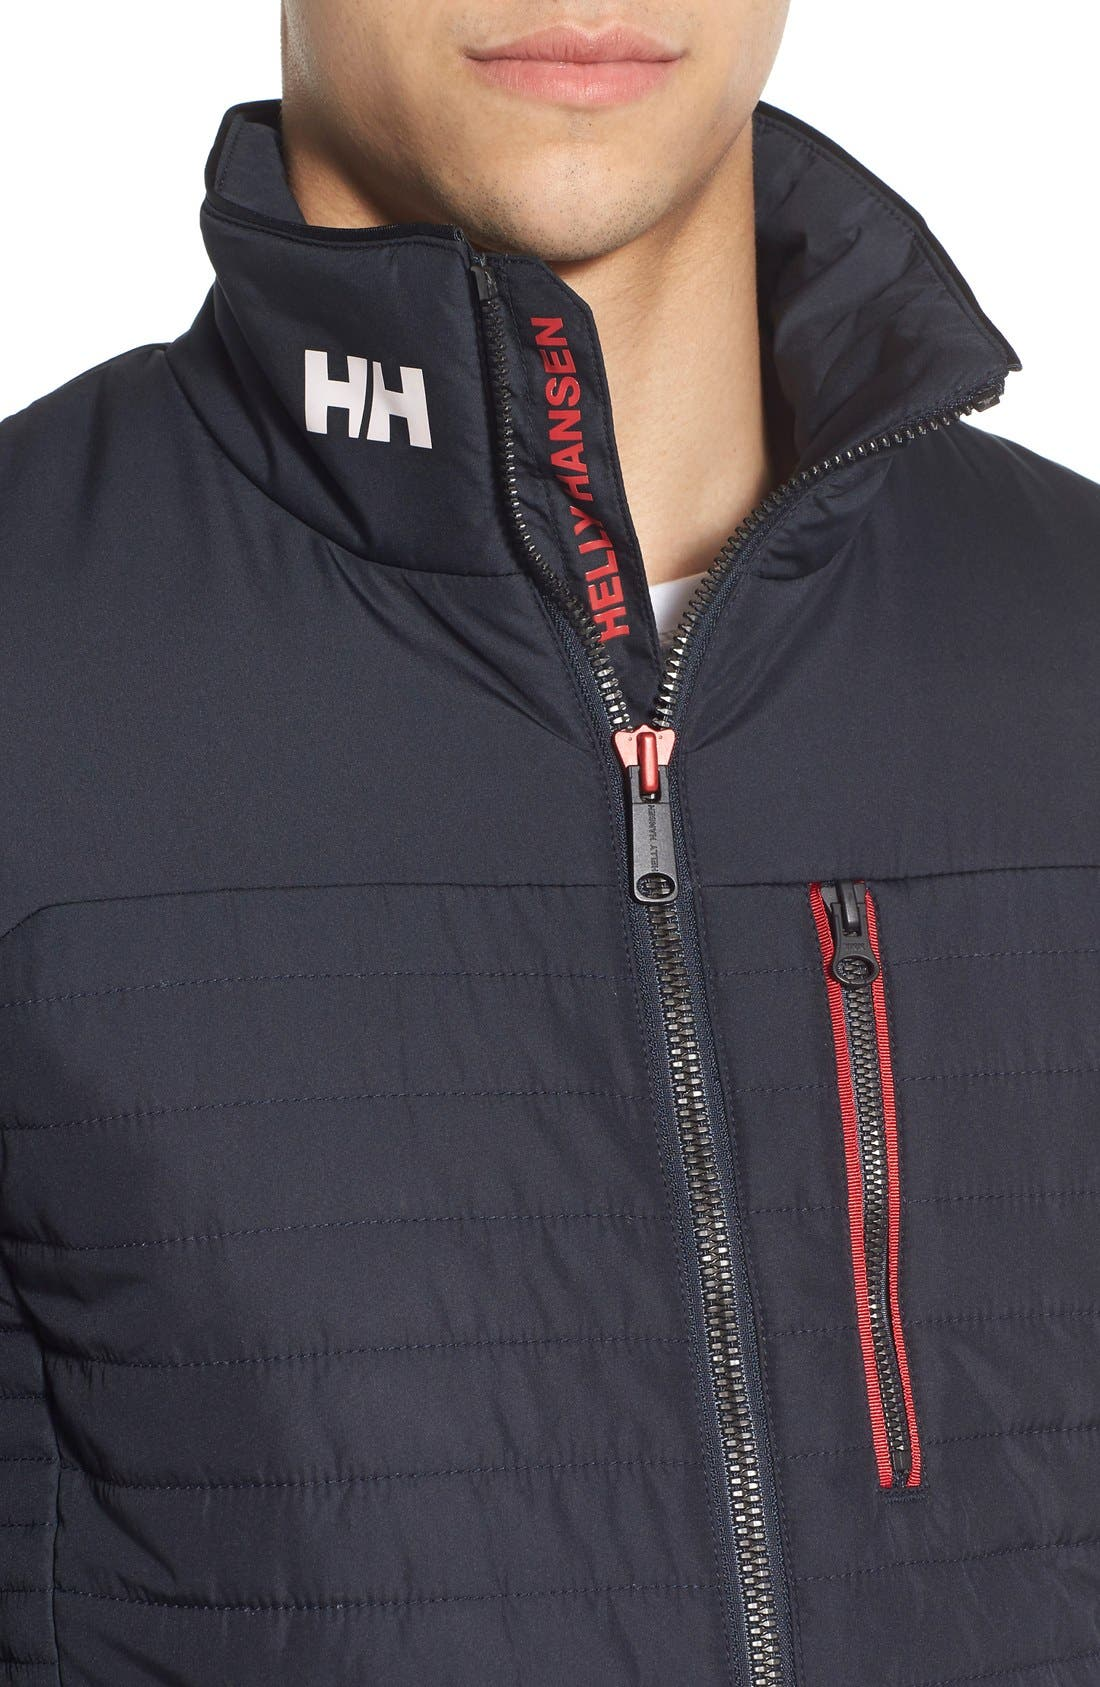 'Crew' Water & Wind Resistant Primaloft<sup>®</sup> Jacket,                             Alternate thumbnail 5, color,                             NAVY